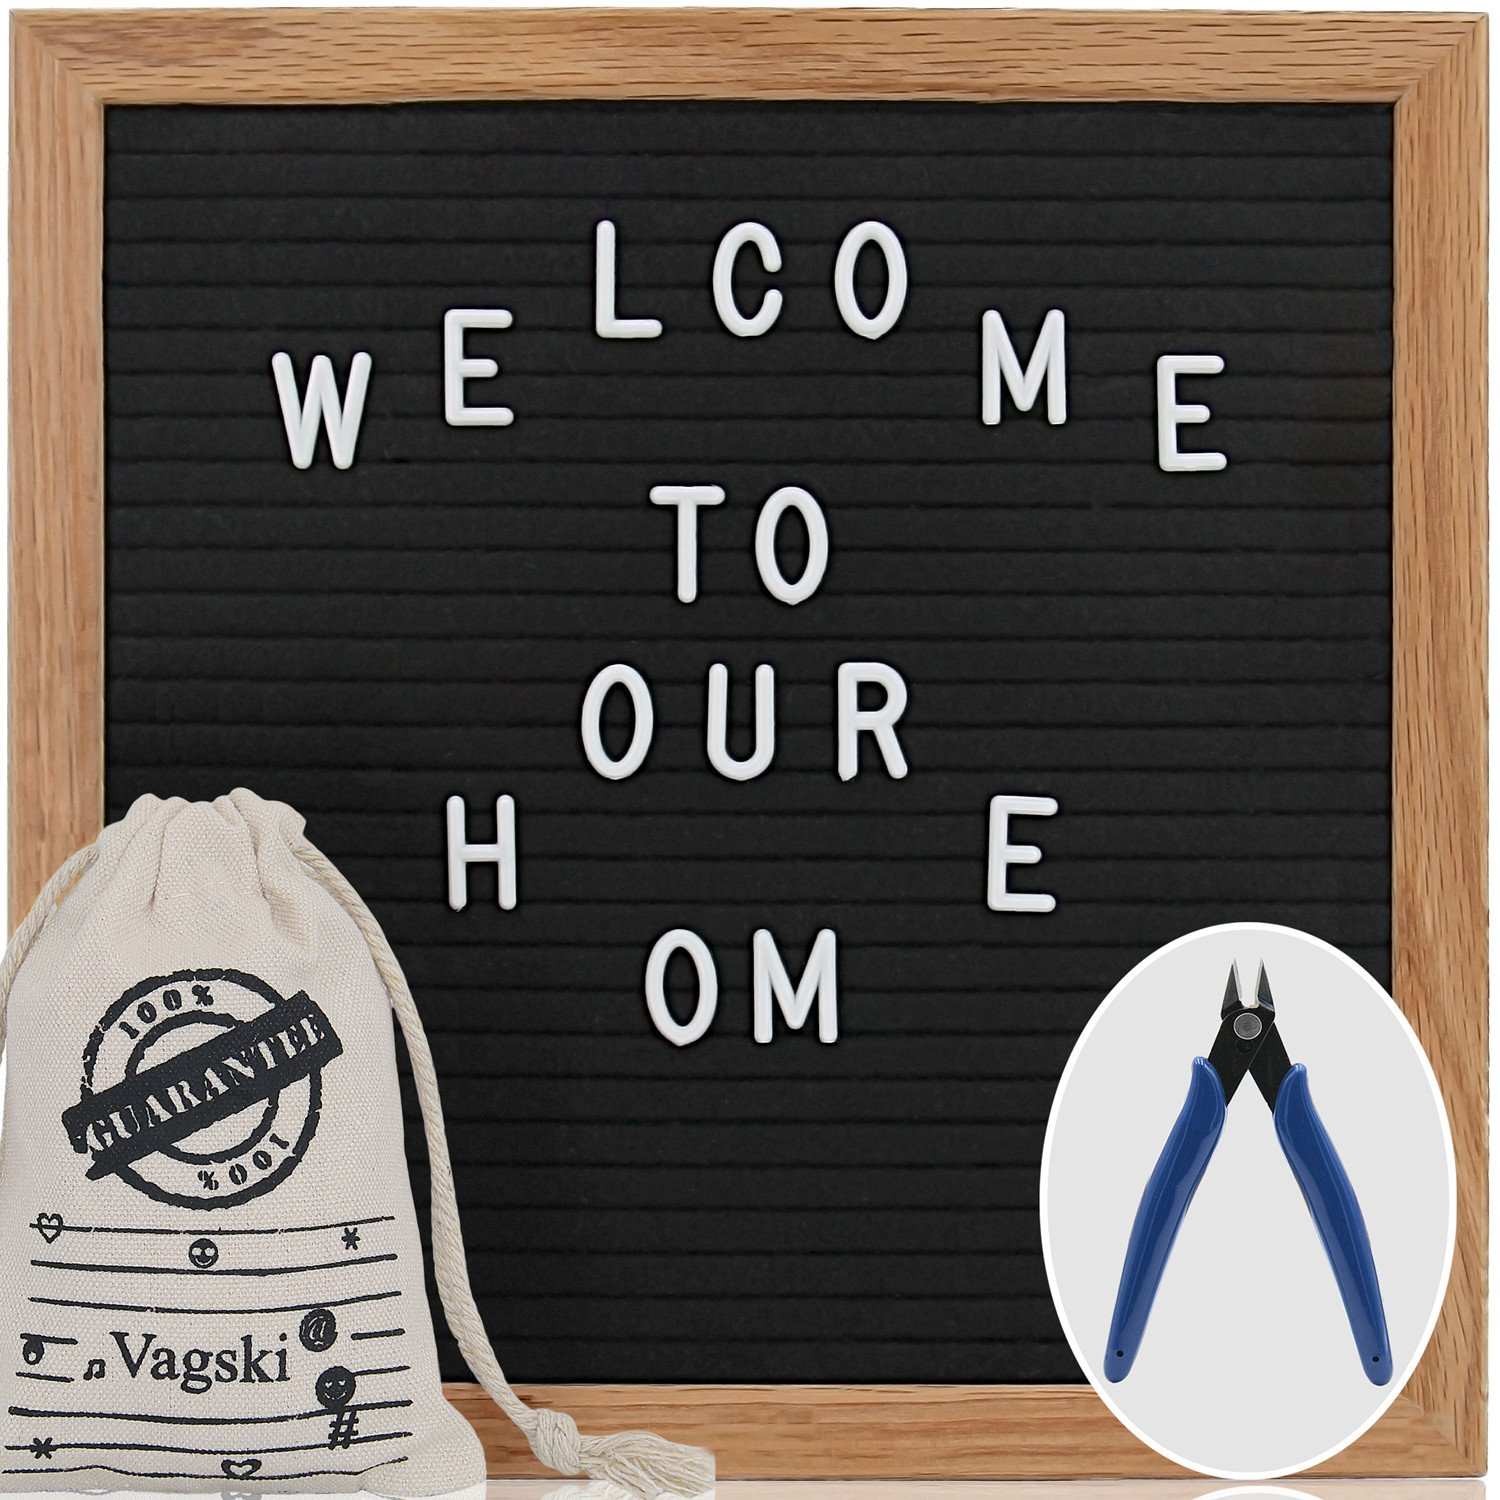 Letter Board - 10'' x 10'' Black Felt Letter Board with 400 Letters, Changeable Letter Board 10x10 Word Board,Business Message Board, Letter Sign with Mounting Hook Canvas Bag +Cute Scissors VAG021 by Vagski